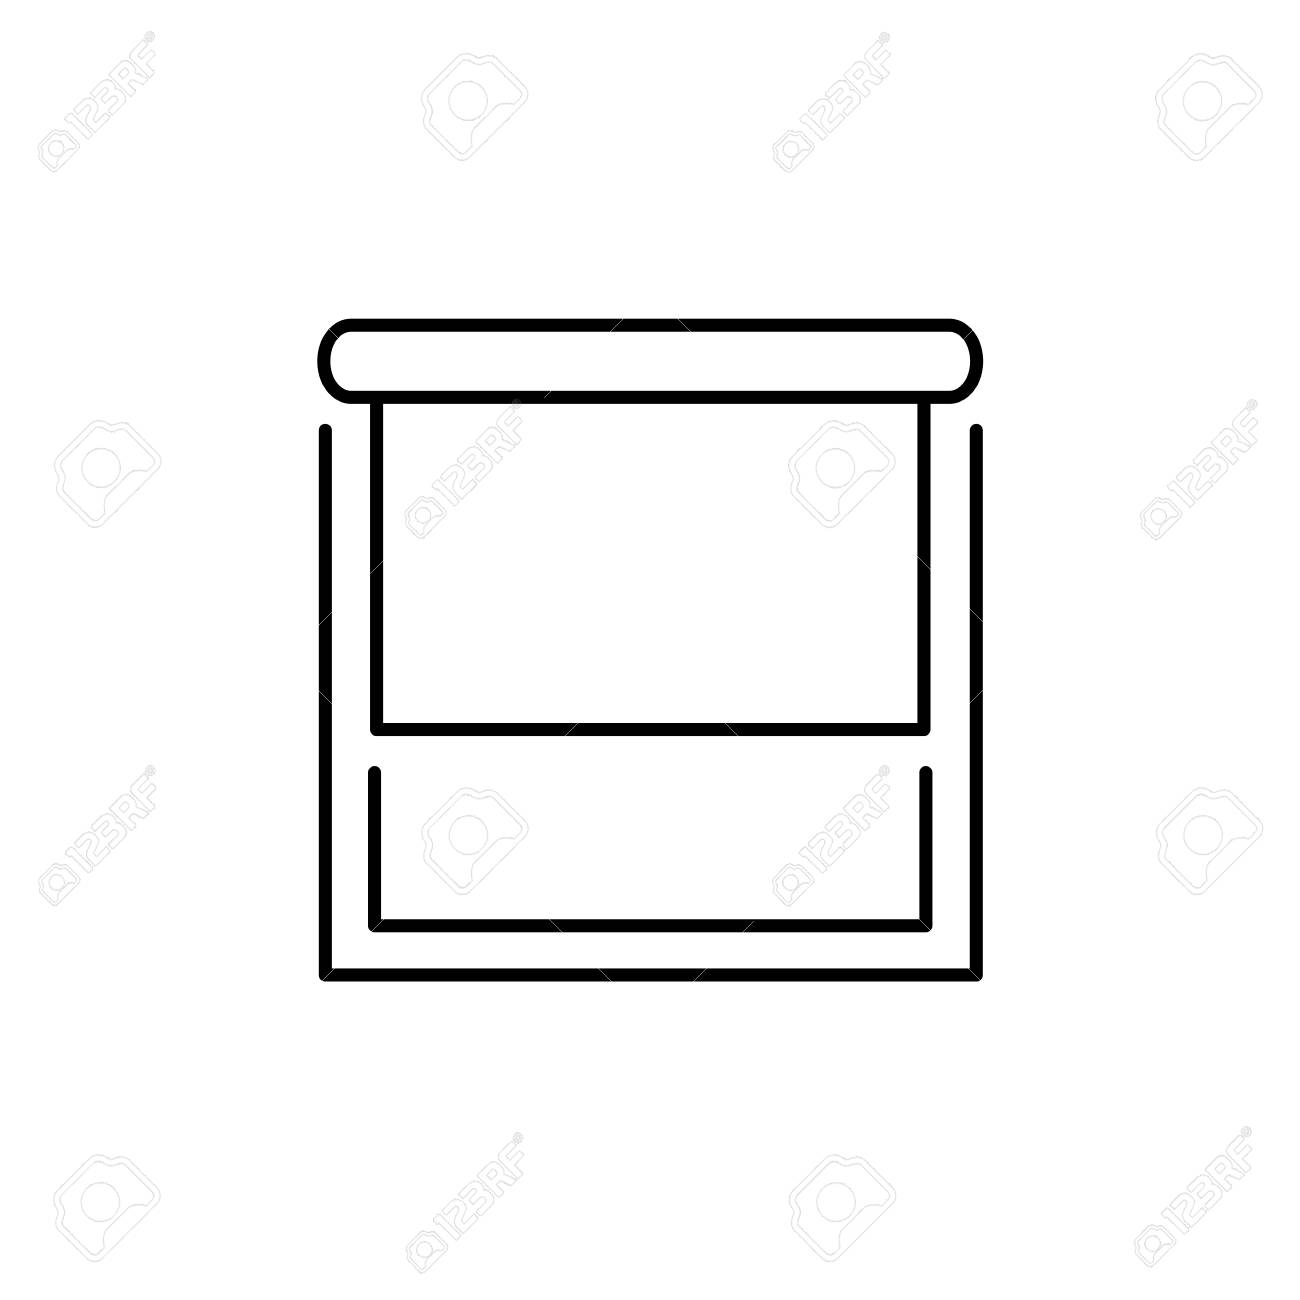 Line illustration of roller fabric blind. Sun protection shade. Room darkening & light blocking jalousie. Isolated object on white background - 106444204